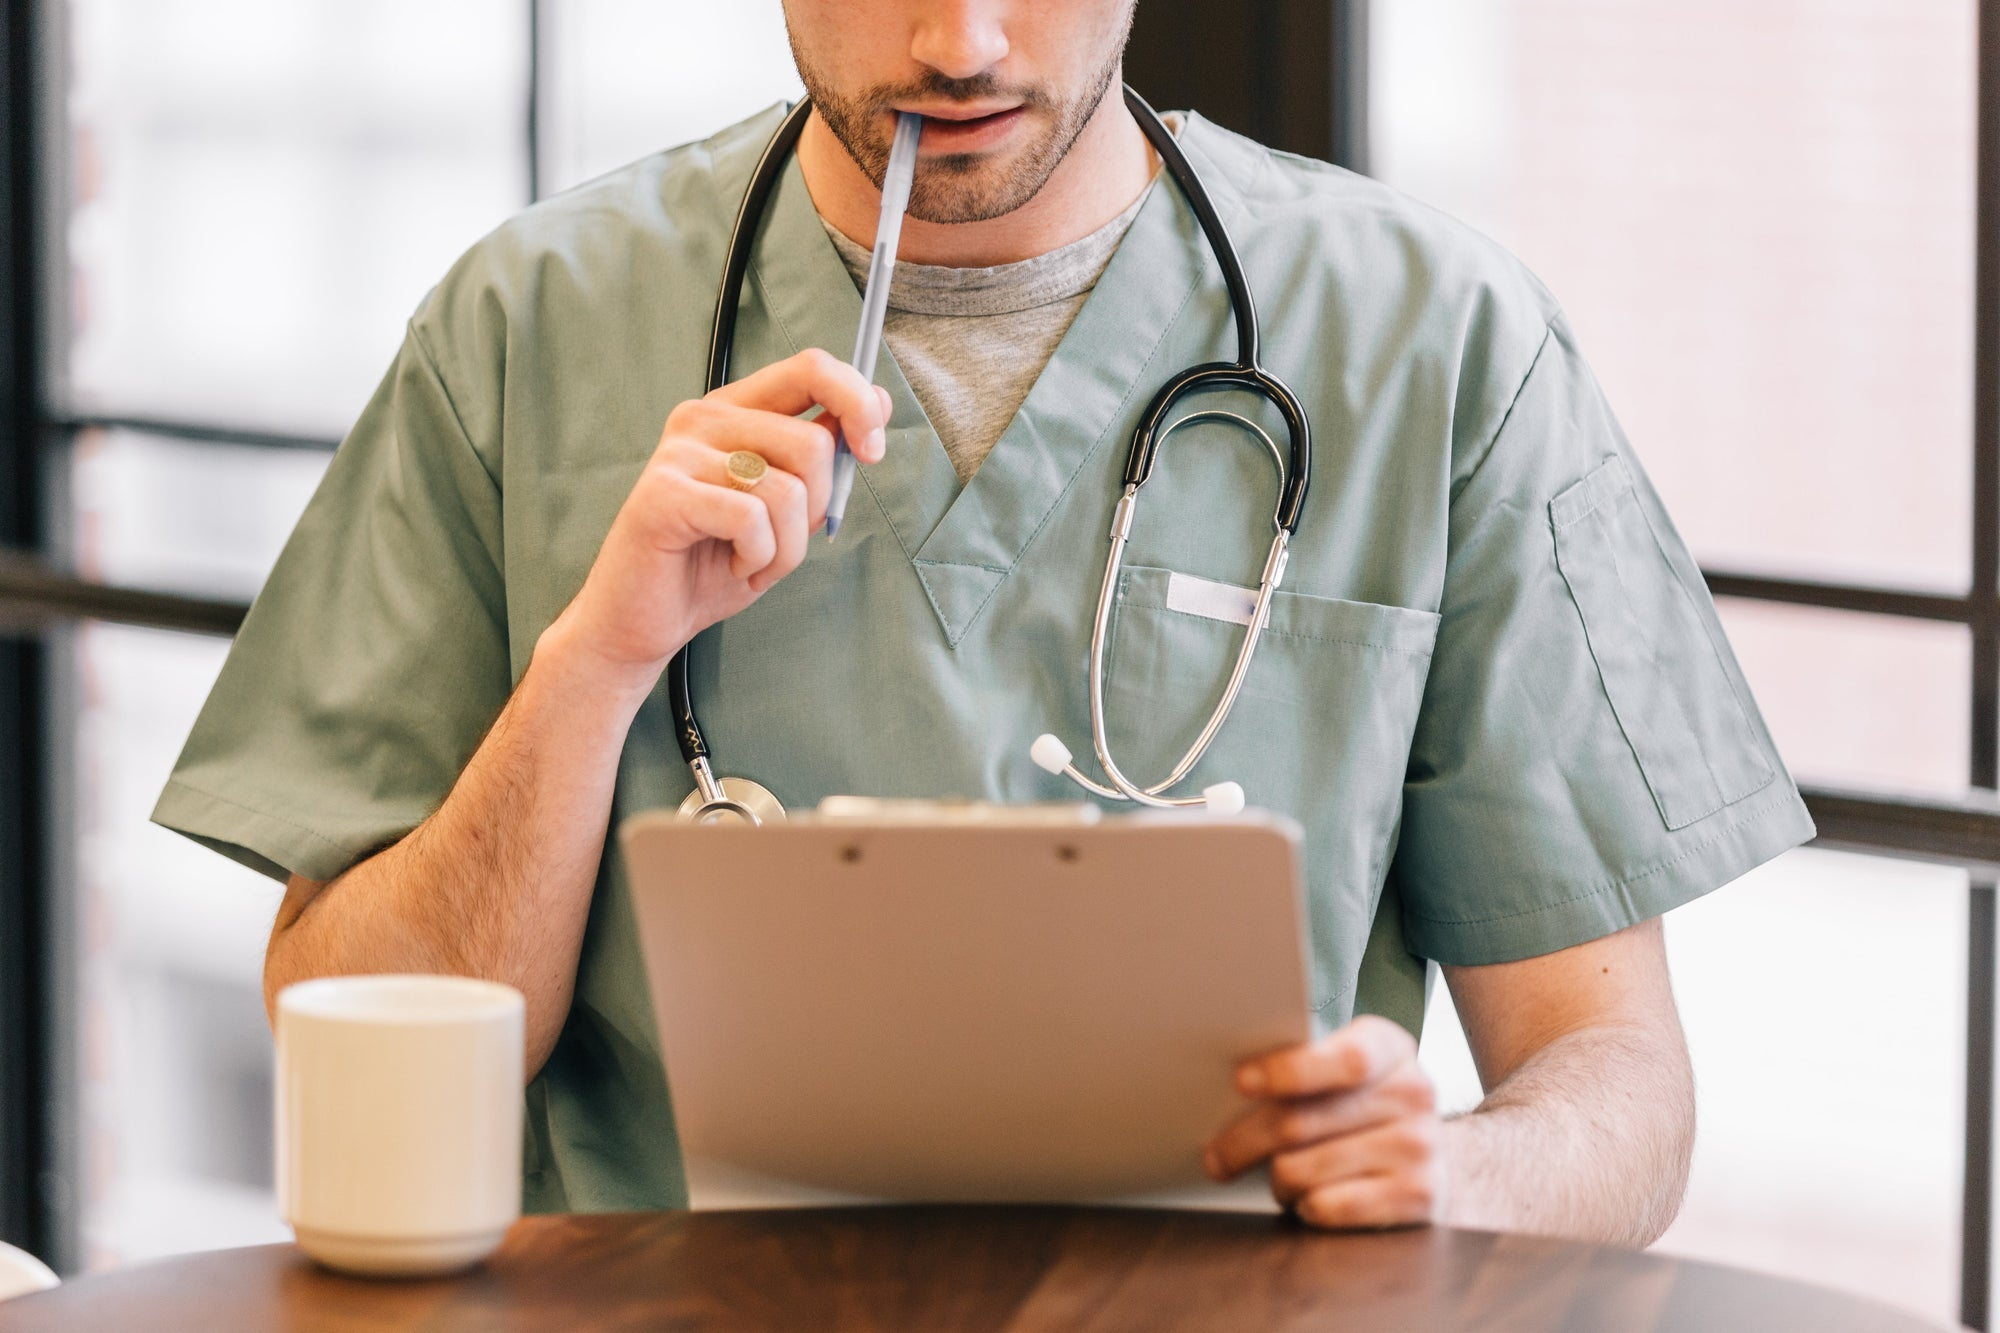 Male RPN in scrubs looking at clipboard